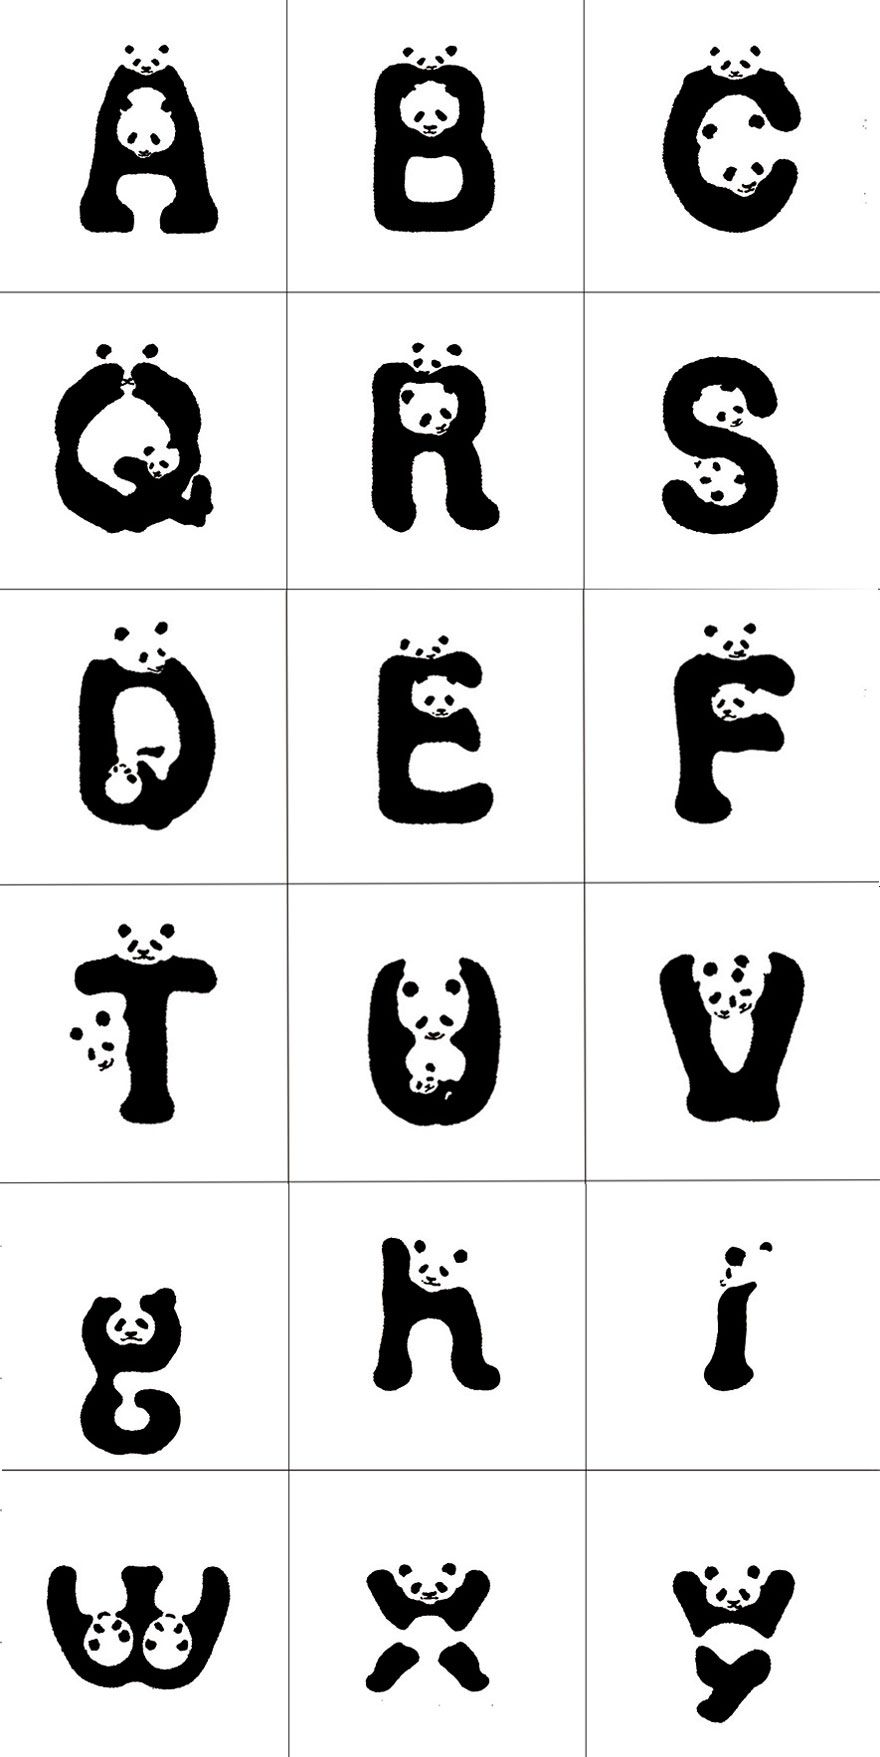 Gmail panda theme - Wwf Japan Created A Panda Font To Raise Public Awareness About The Issue Of Endangered Giant